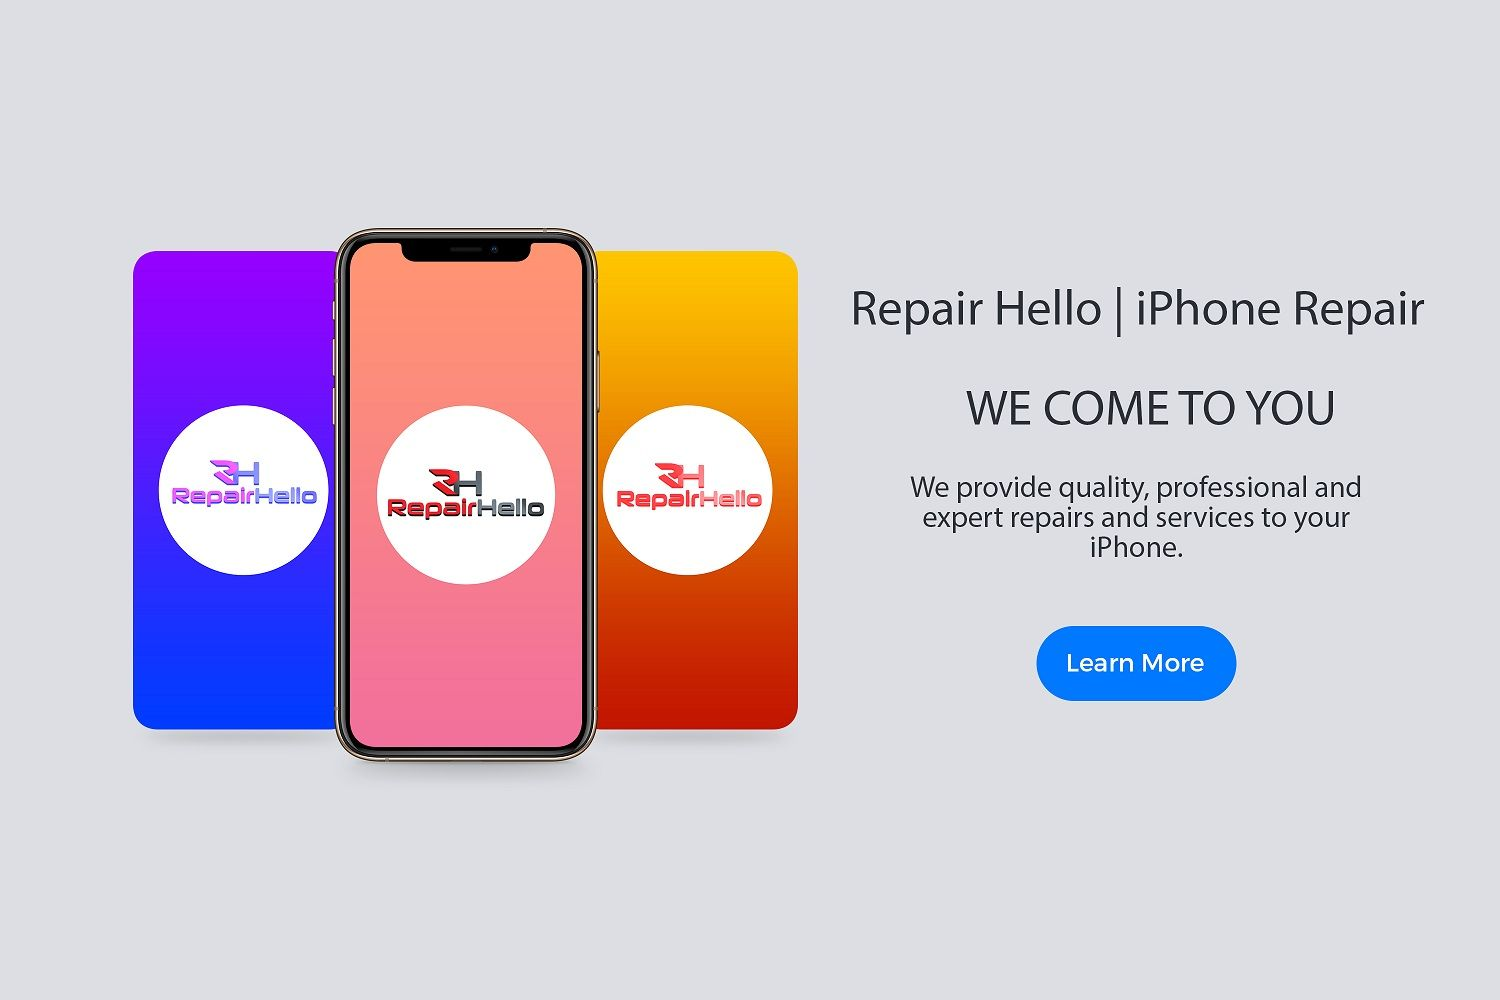 Repair Hello Iphone Screen Fort Lauderdale We Come To You In 2020 Iphone Repair Iphone Screen Repair Repair